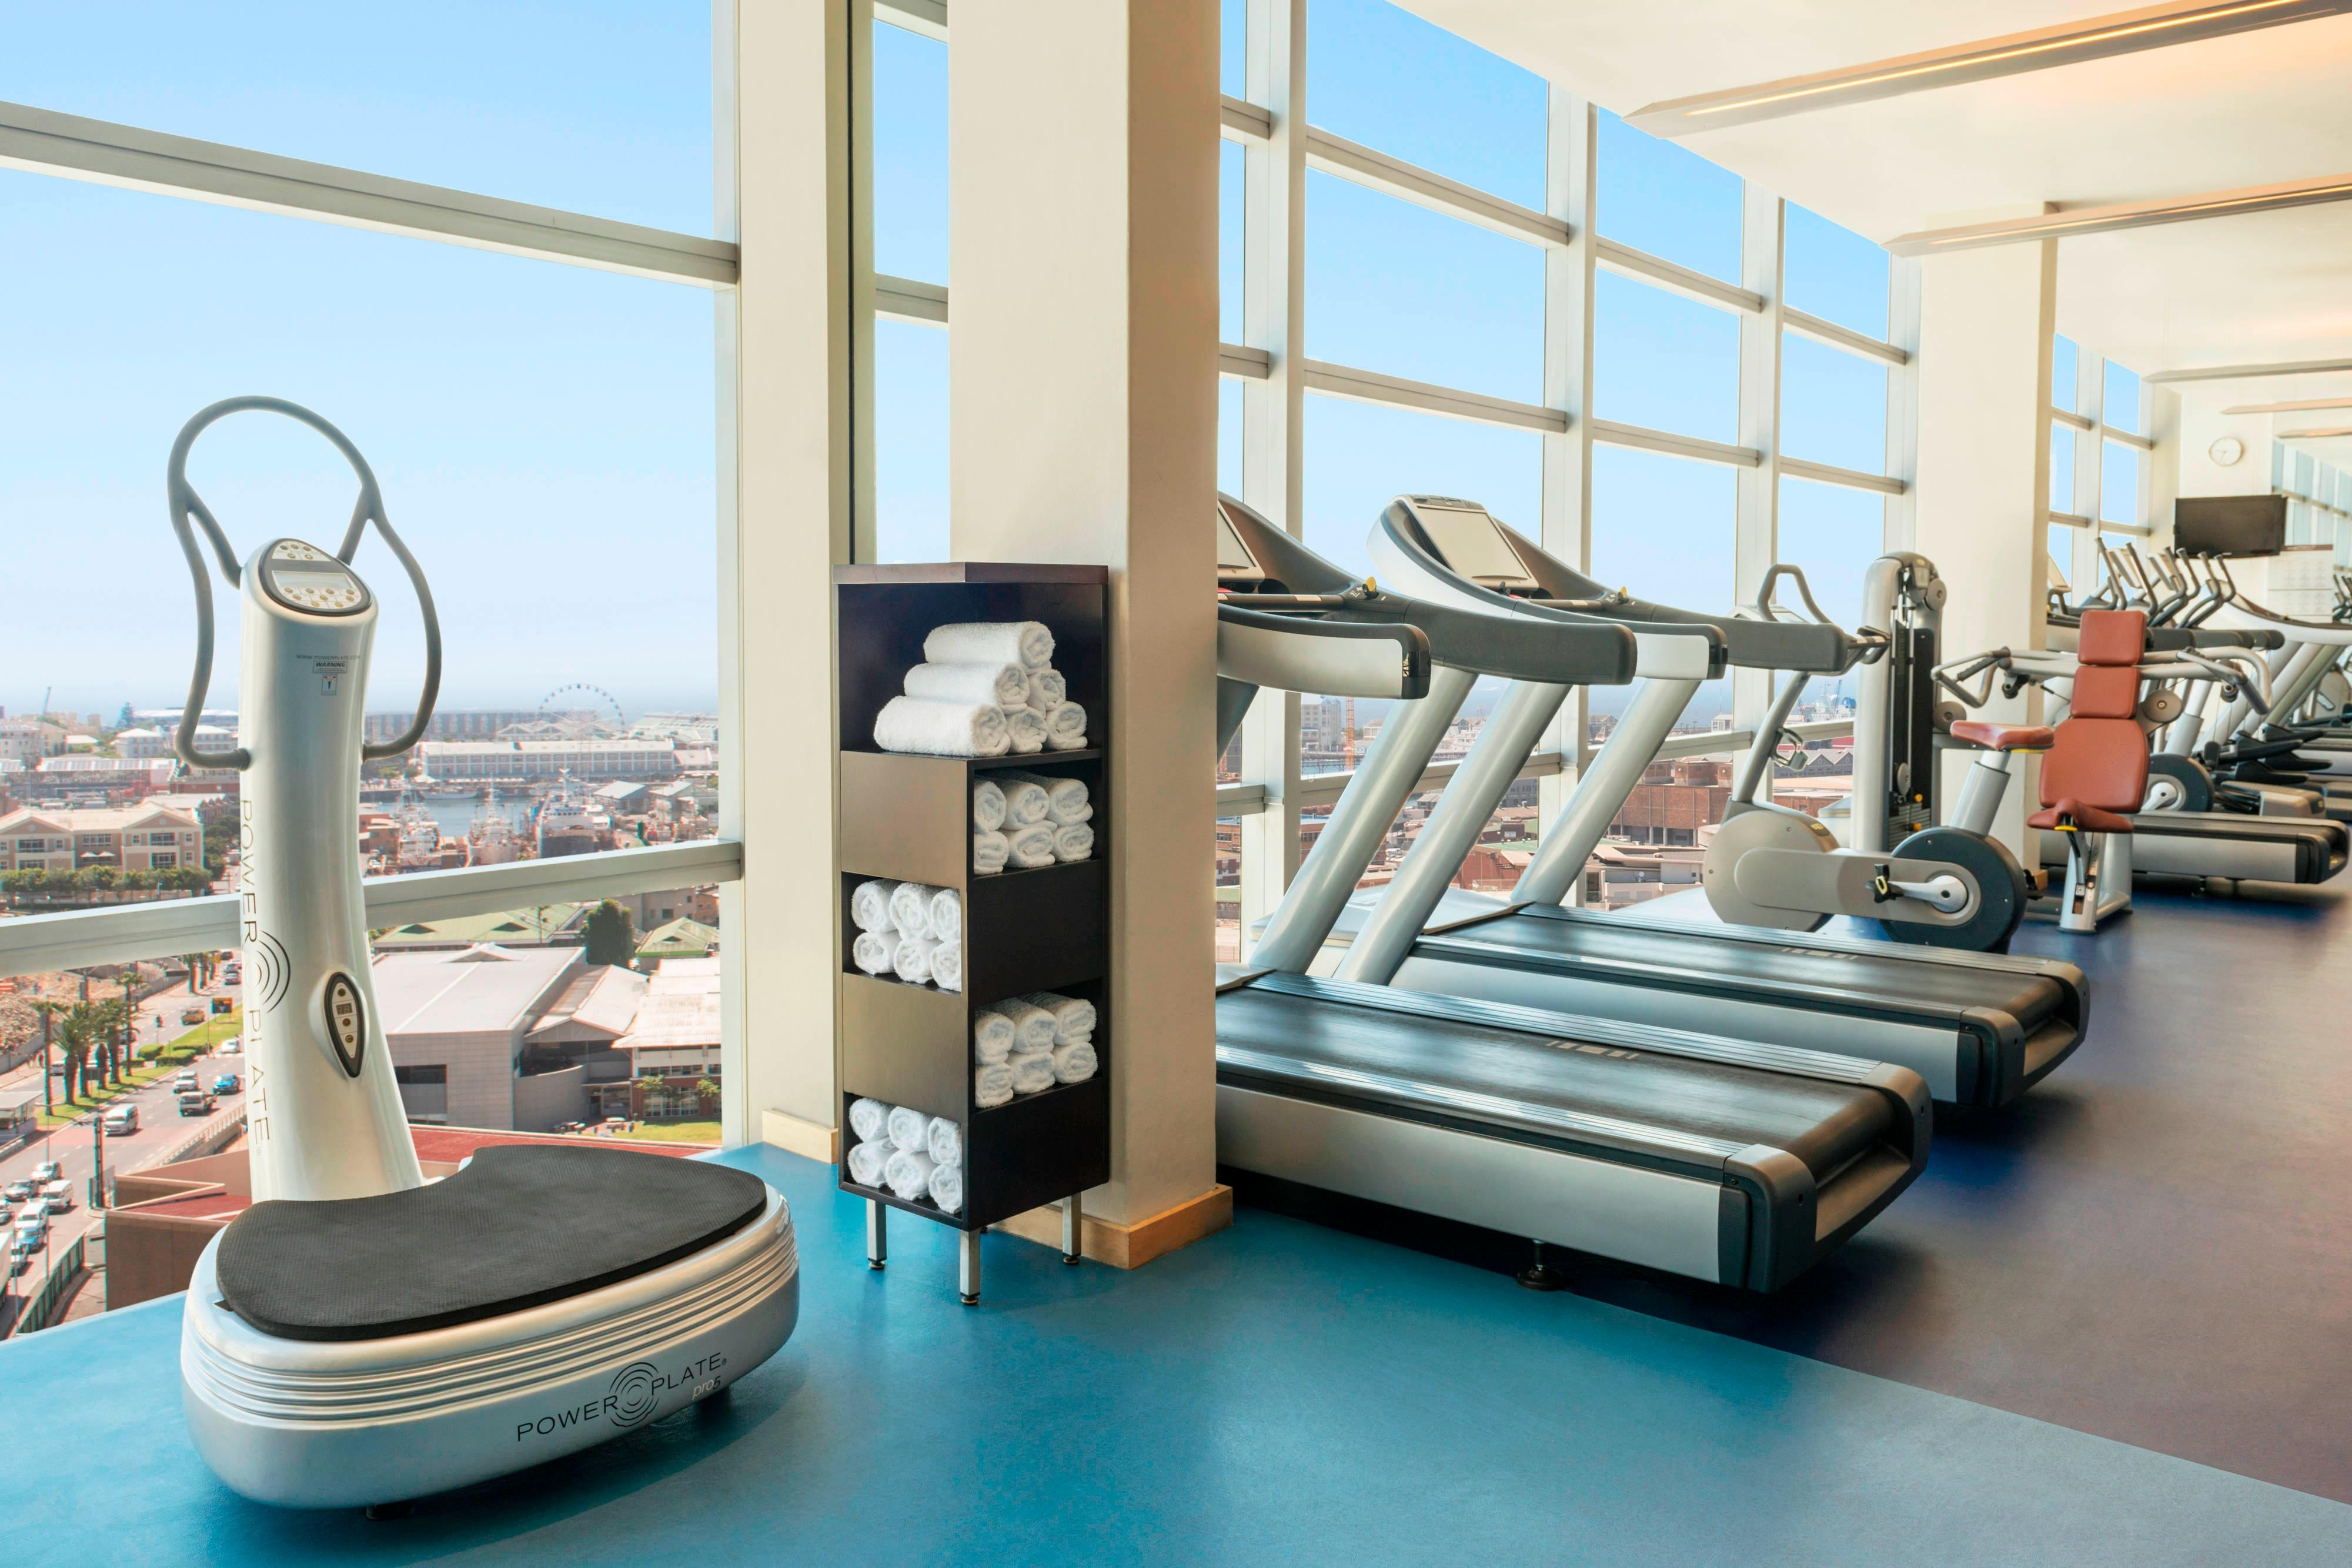 Westin Workout Fitness Centre